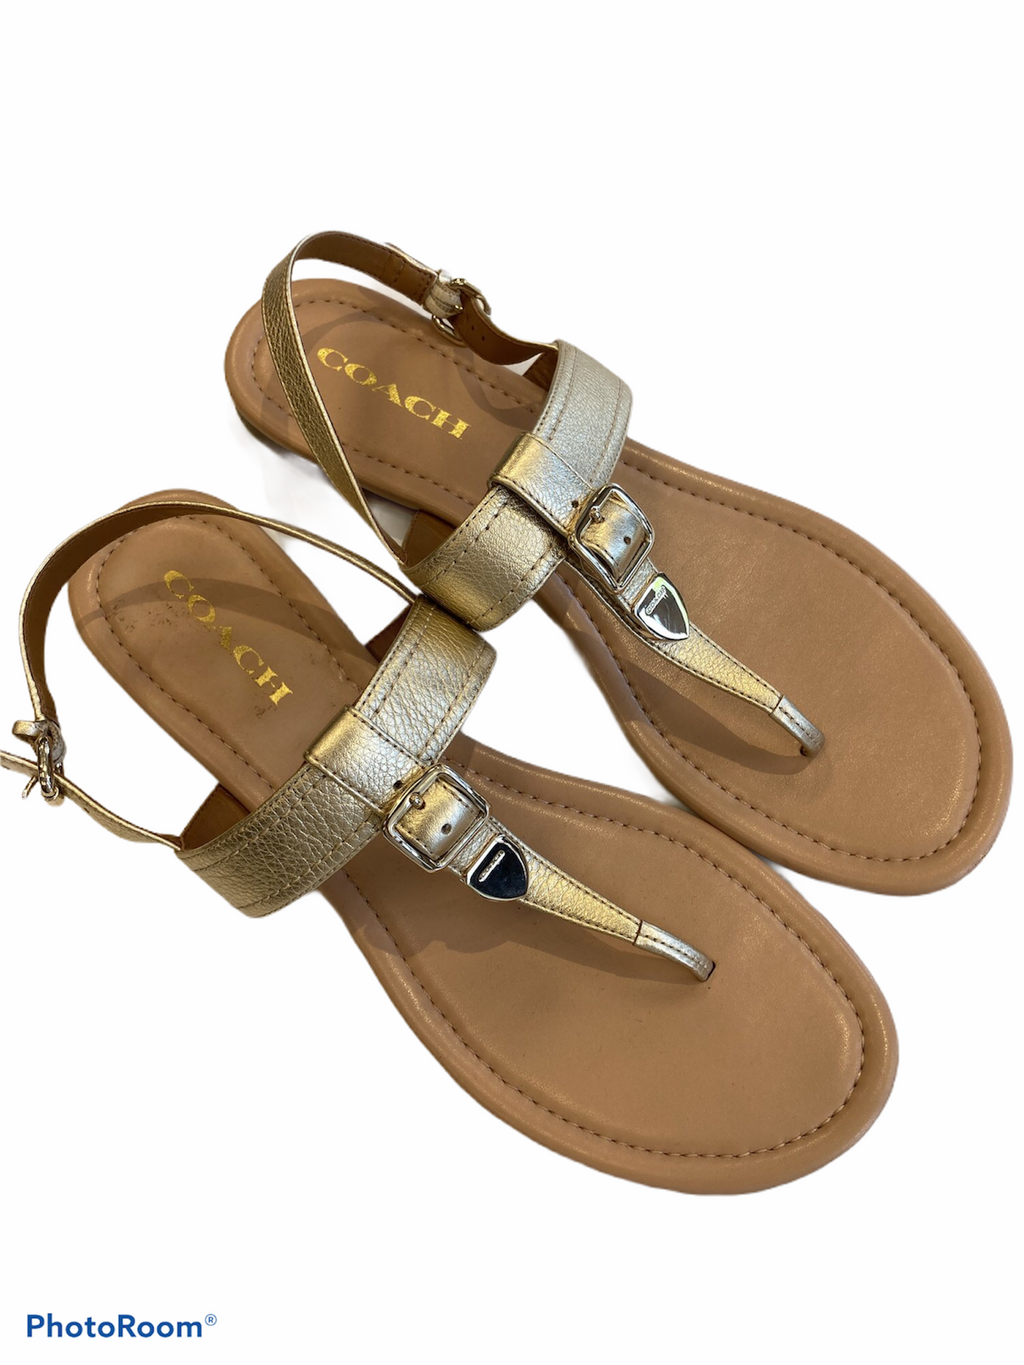 Sandals Flat By Coach  Size: 10